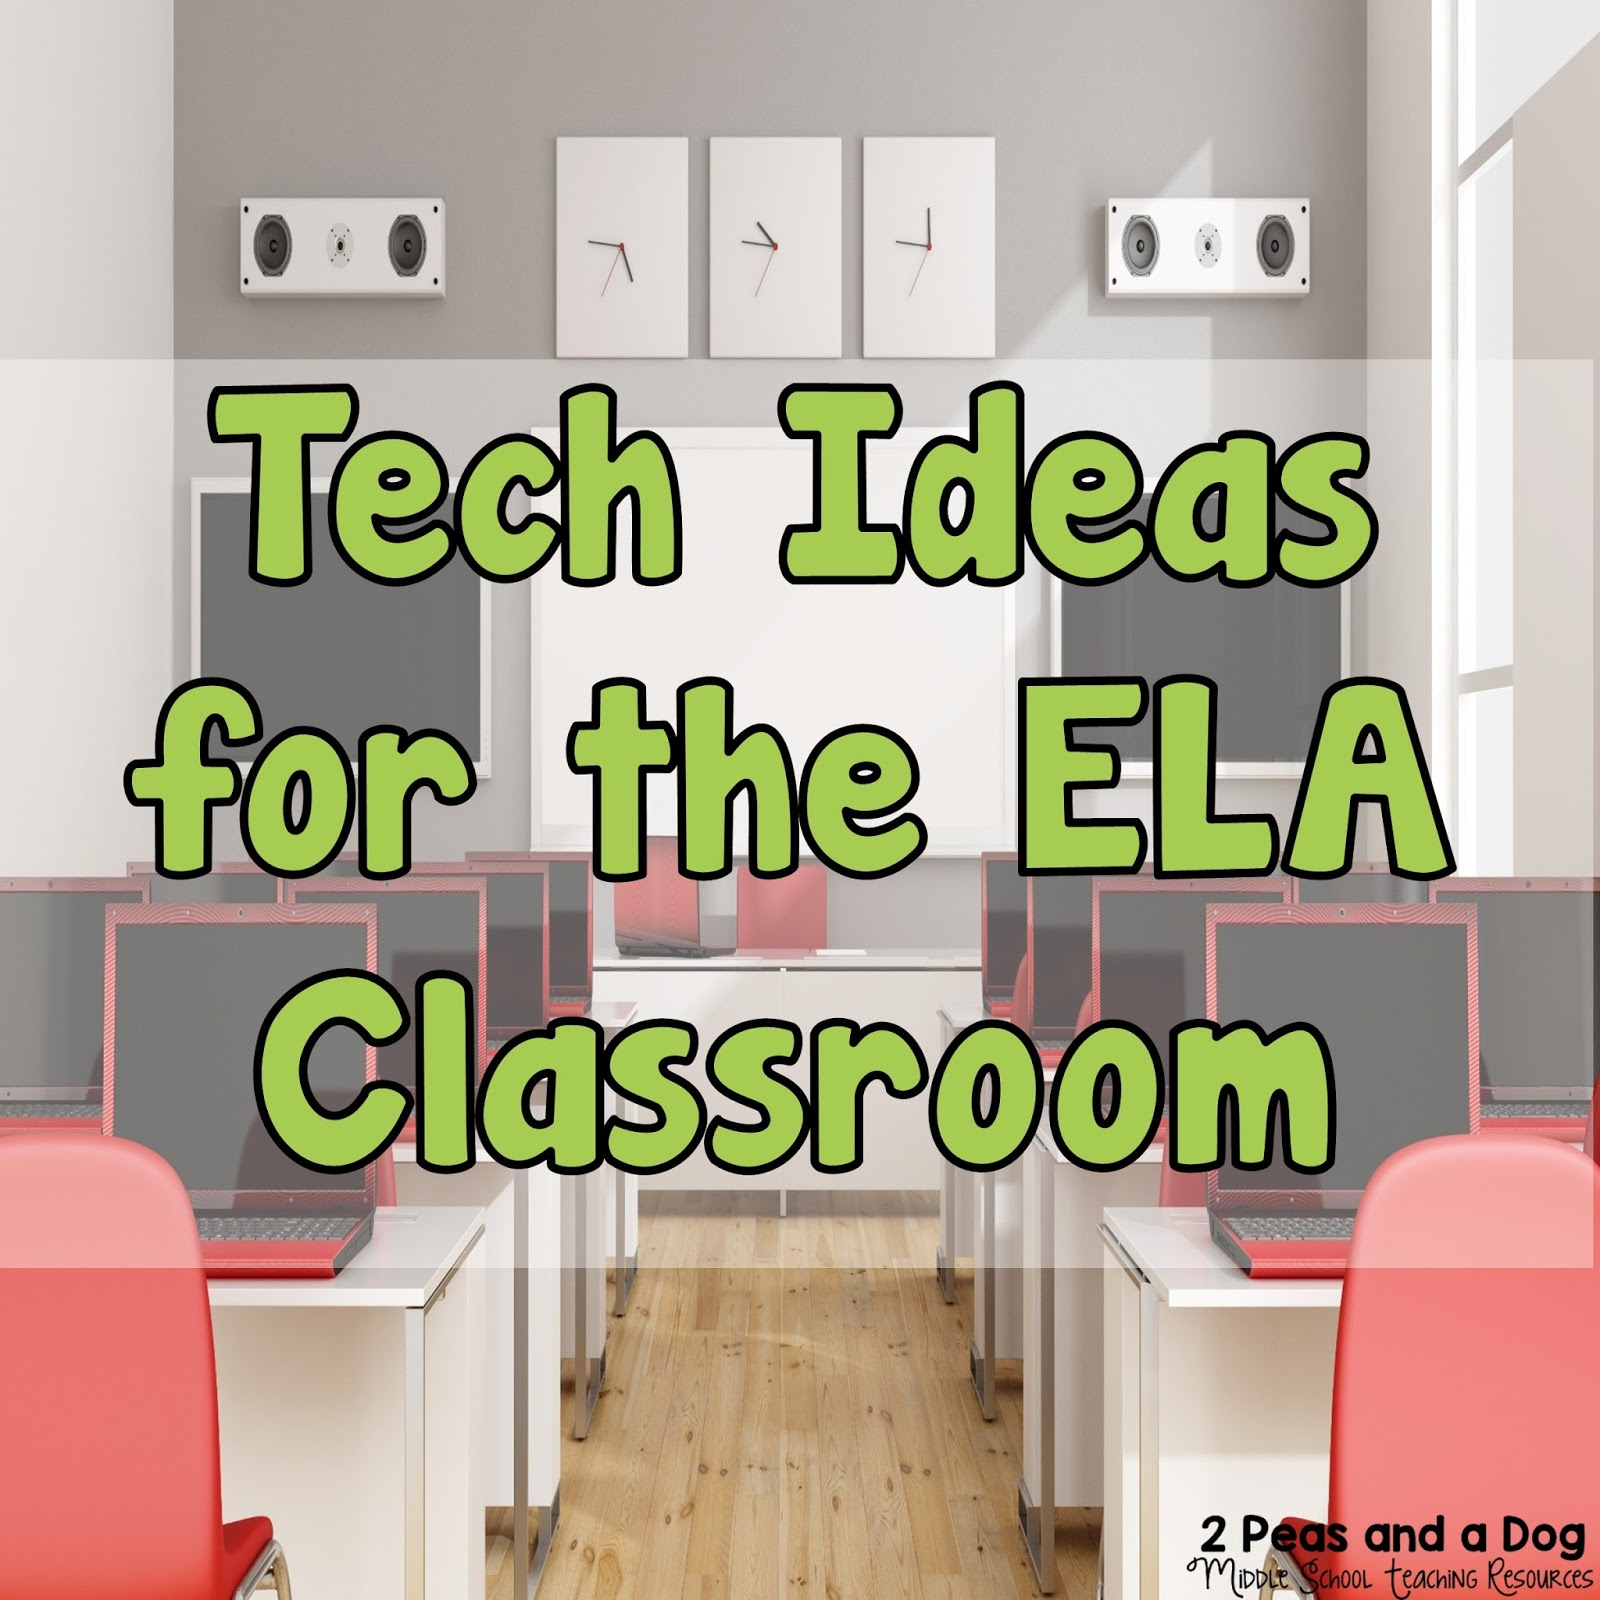 Technology Ideas For The English Language Arts Classroom - 2